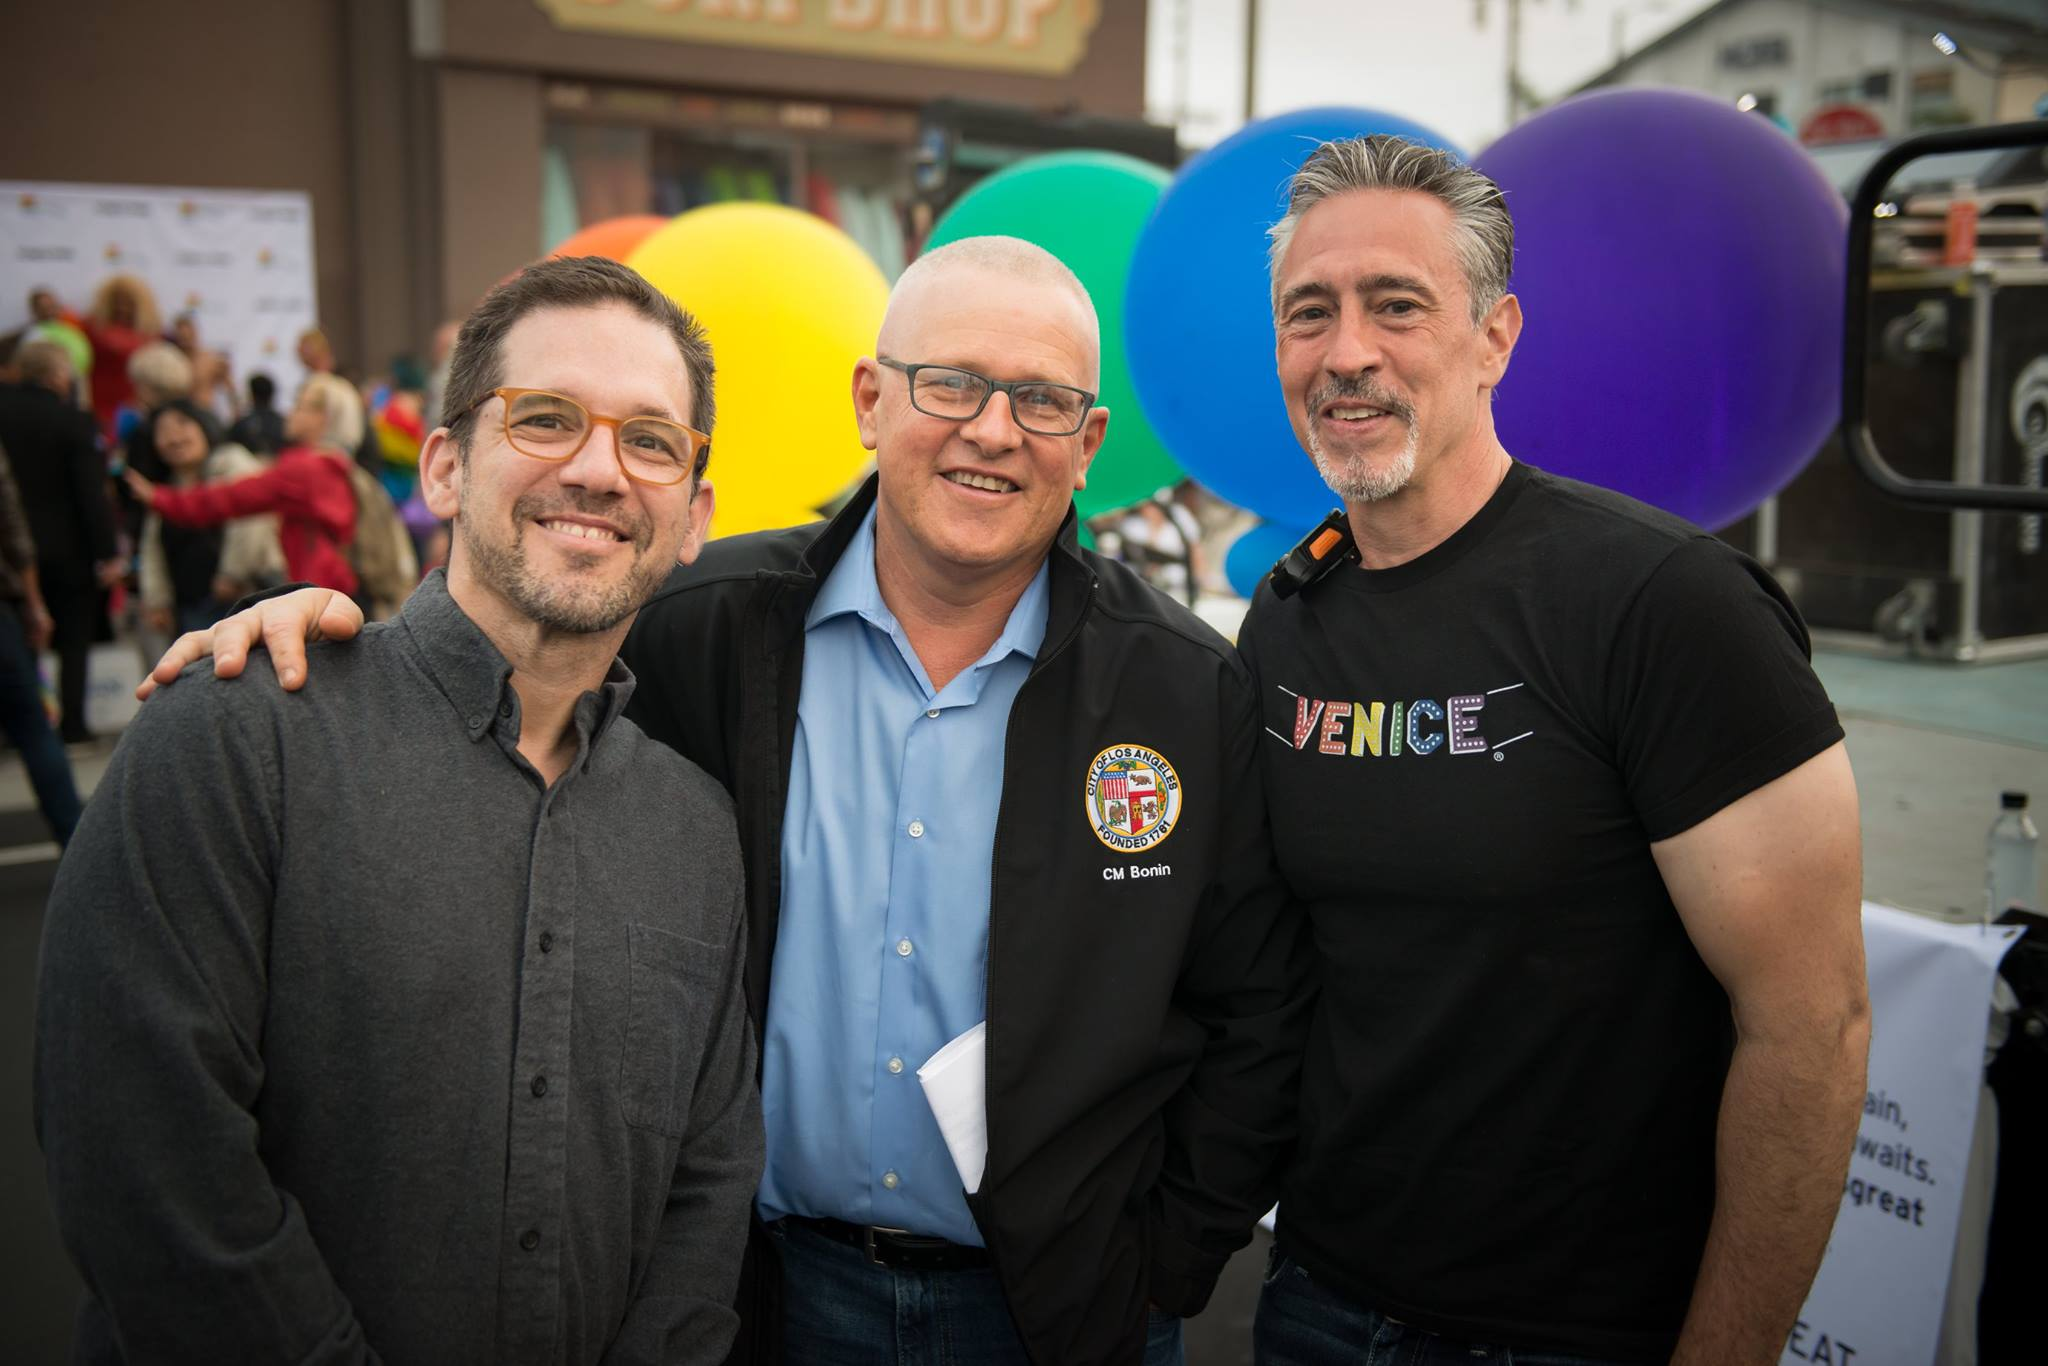 George Francisco, Mike Bonin and Bonin's Husband at Venice Pride 2017